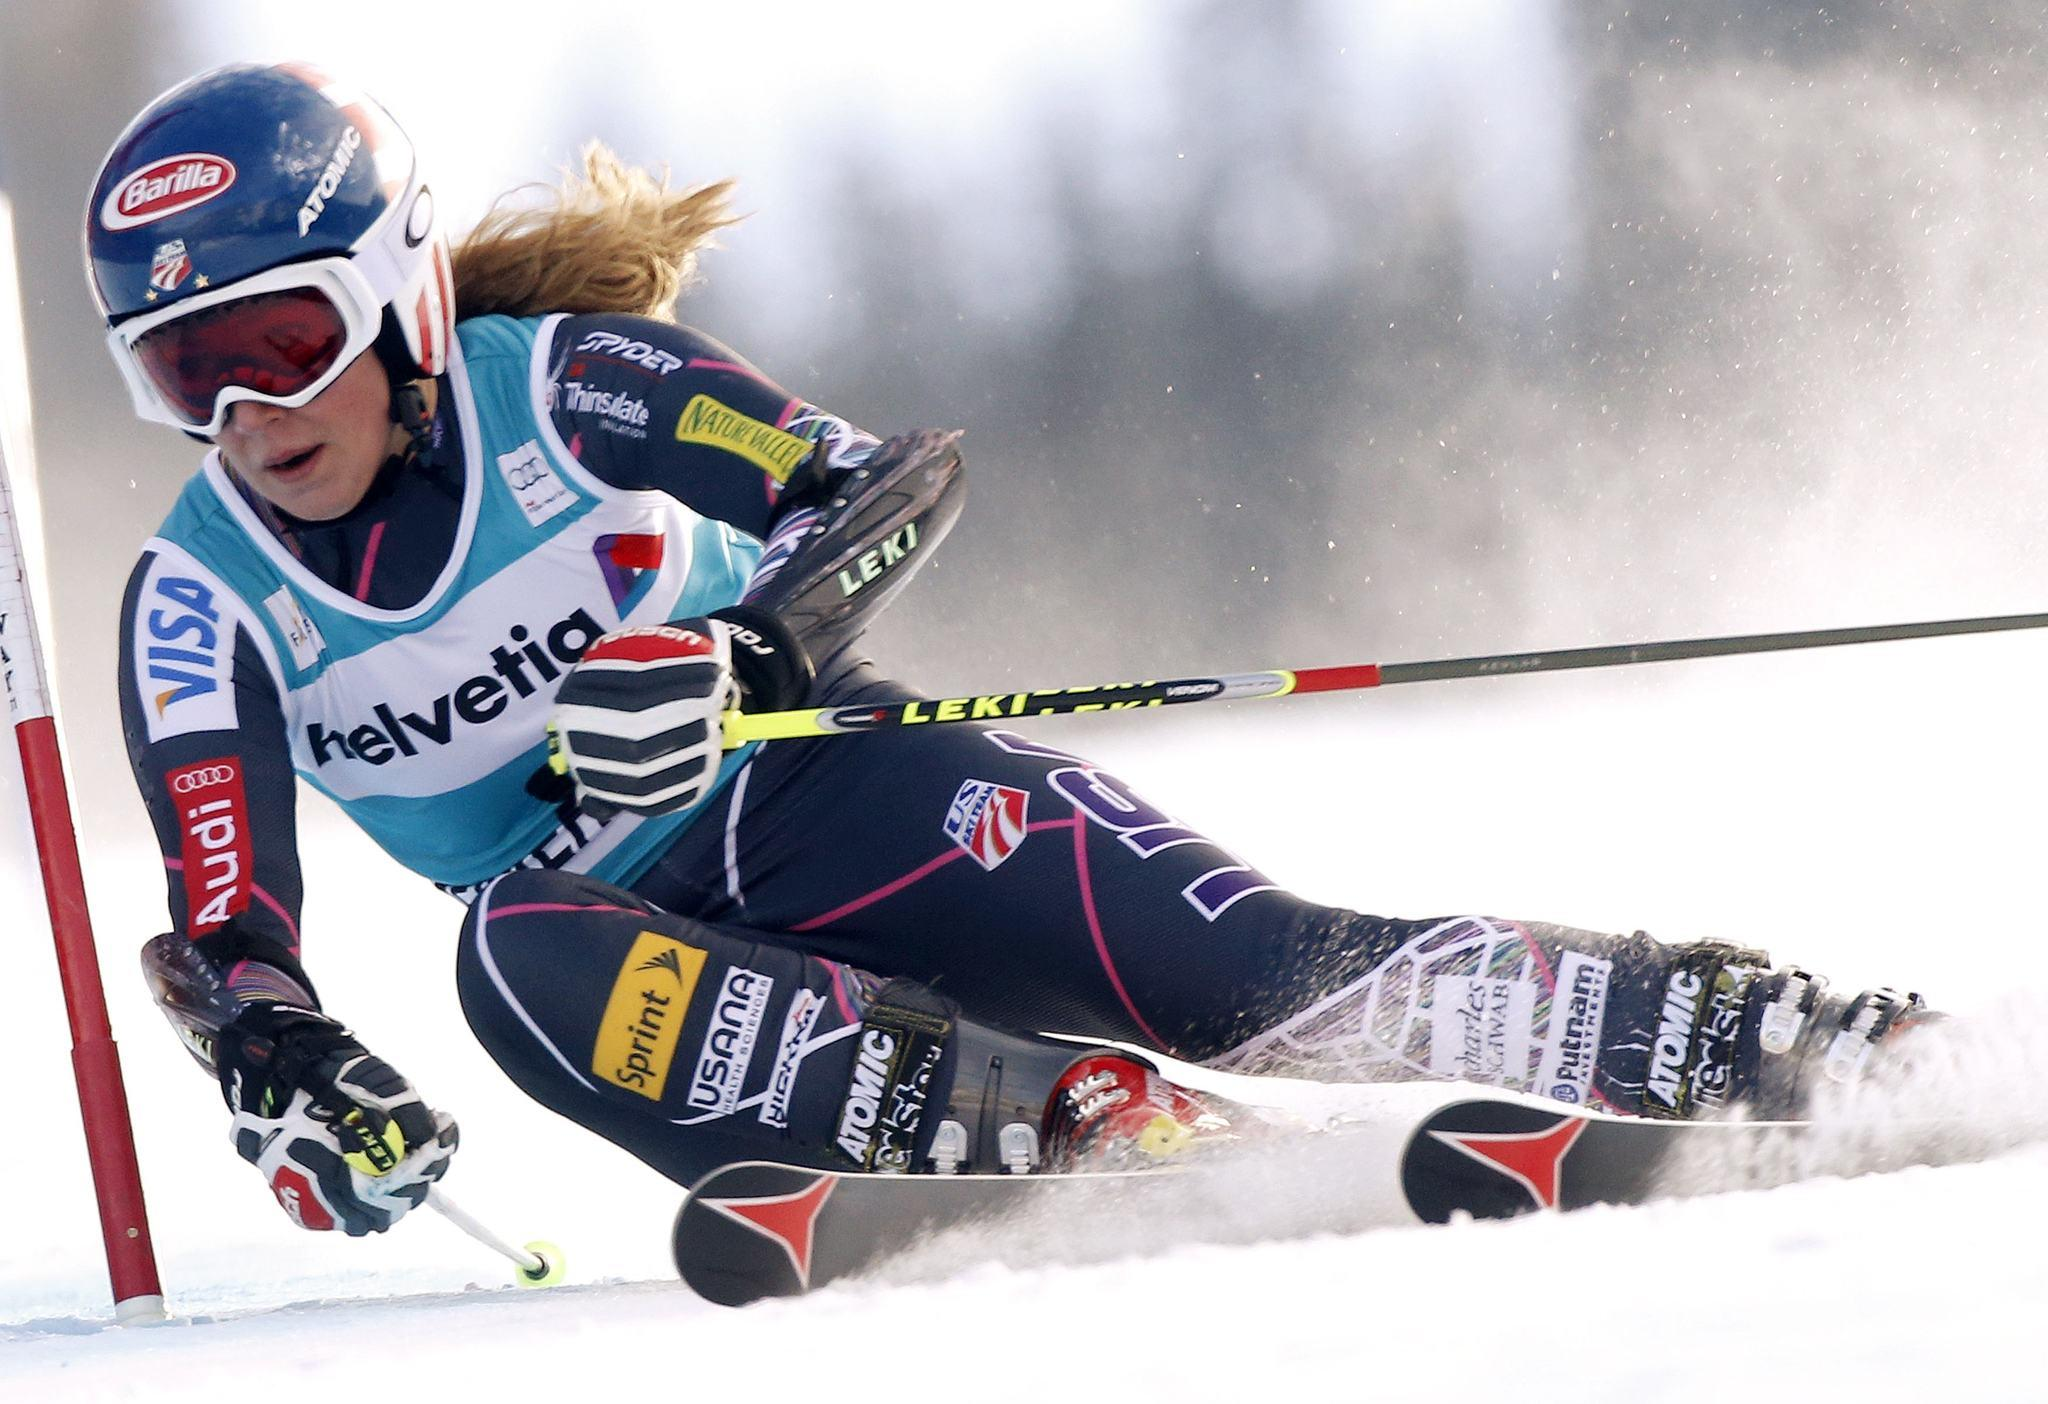 Mikaela Shiffrin skis to the second best time in the first run in the women's World Cup Giant Slalom ski race in Beaver Creek, Colorado. (Rick Wilking/Reuters Photo)